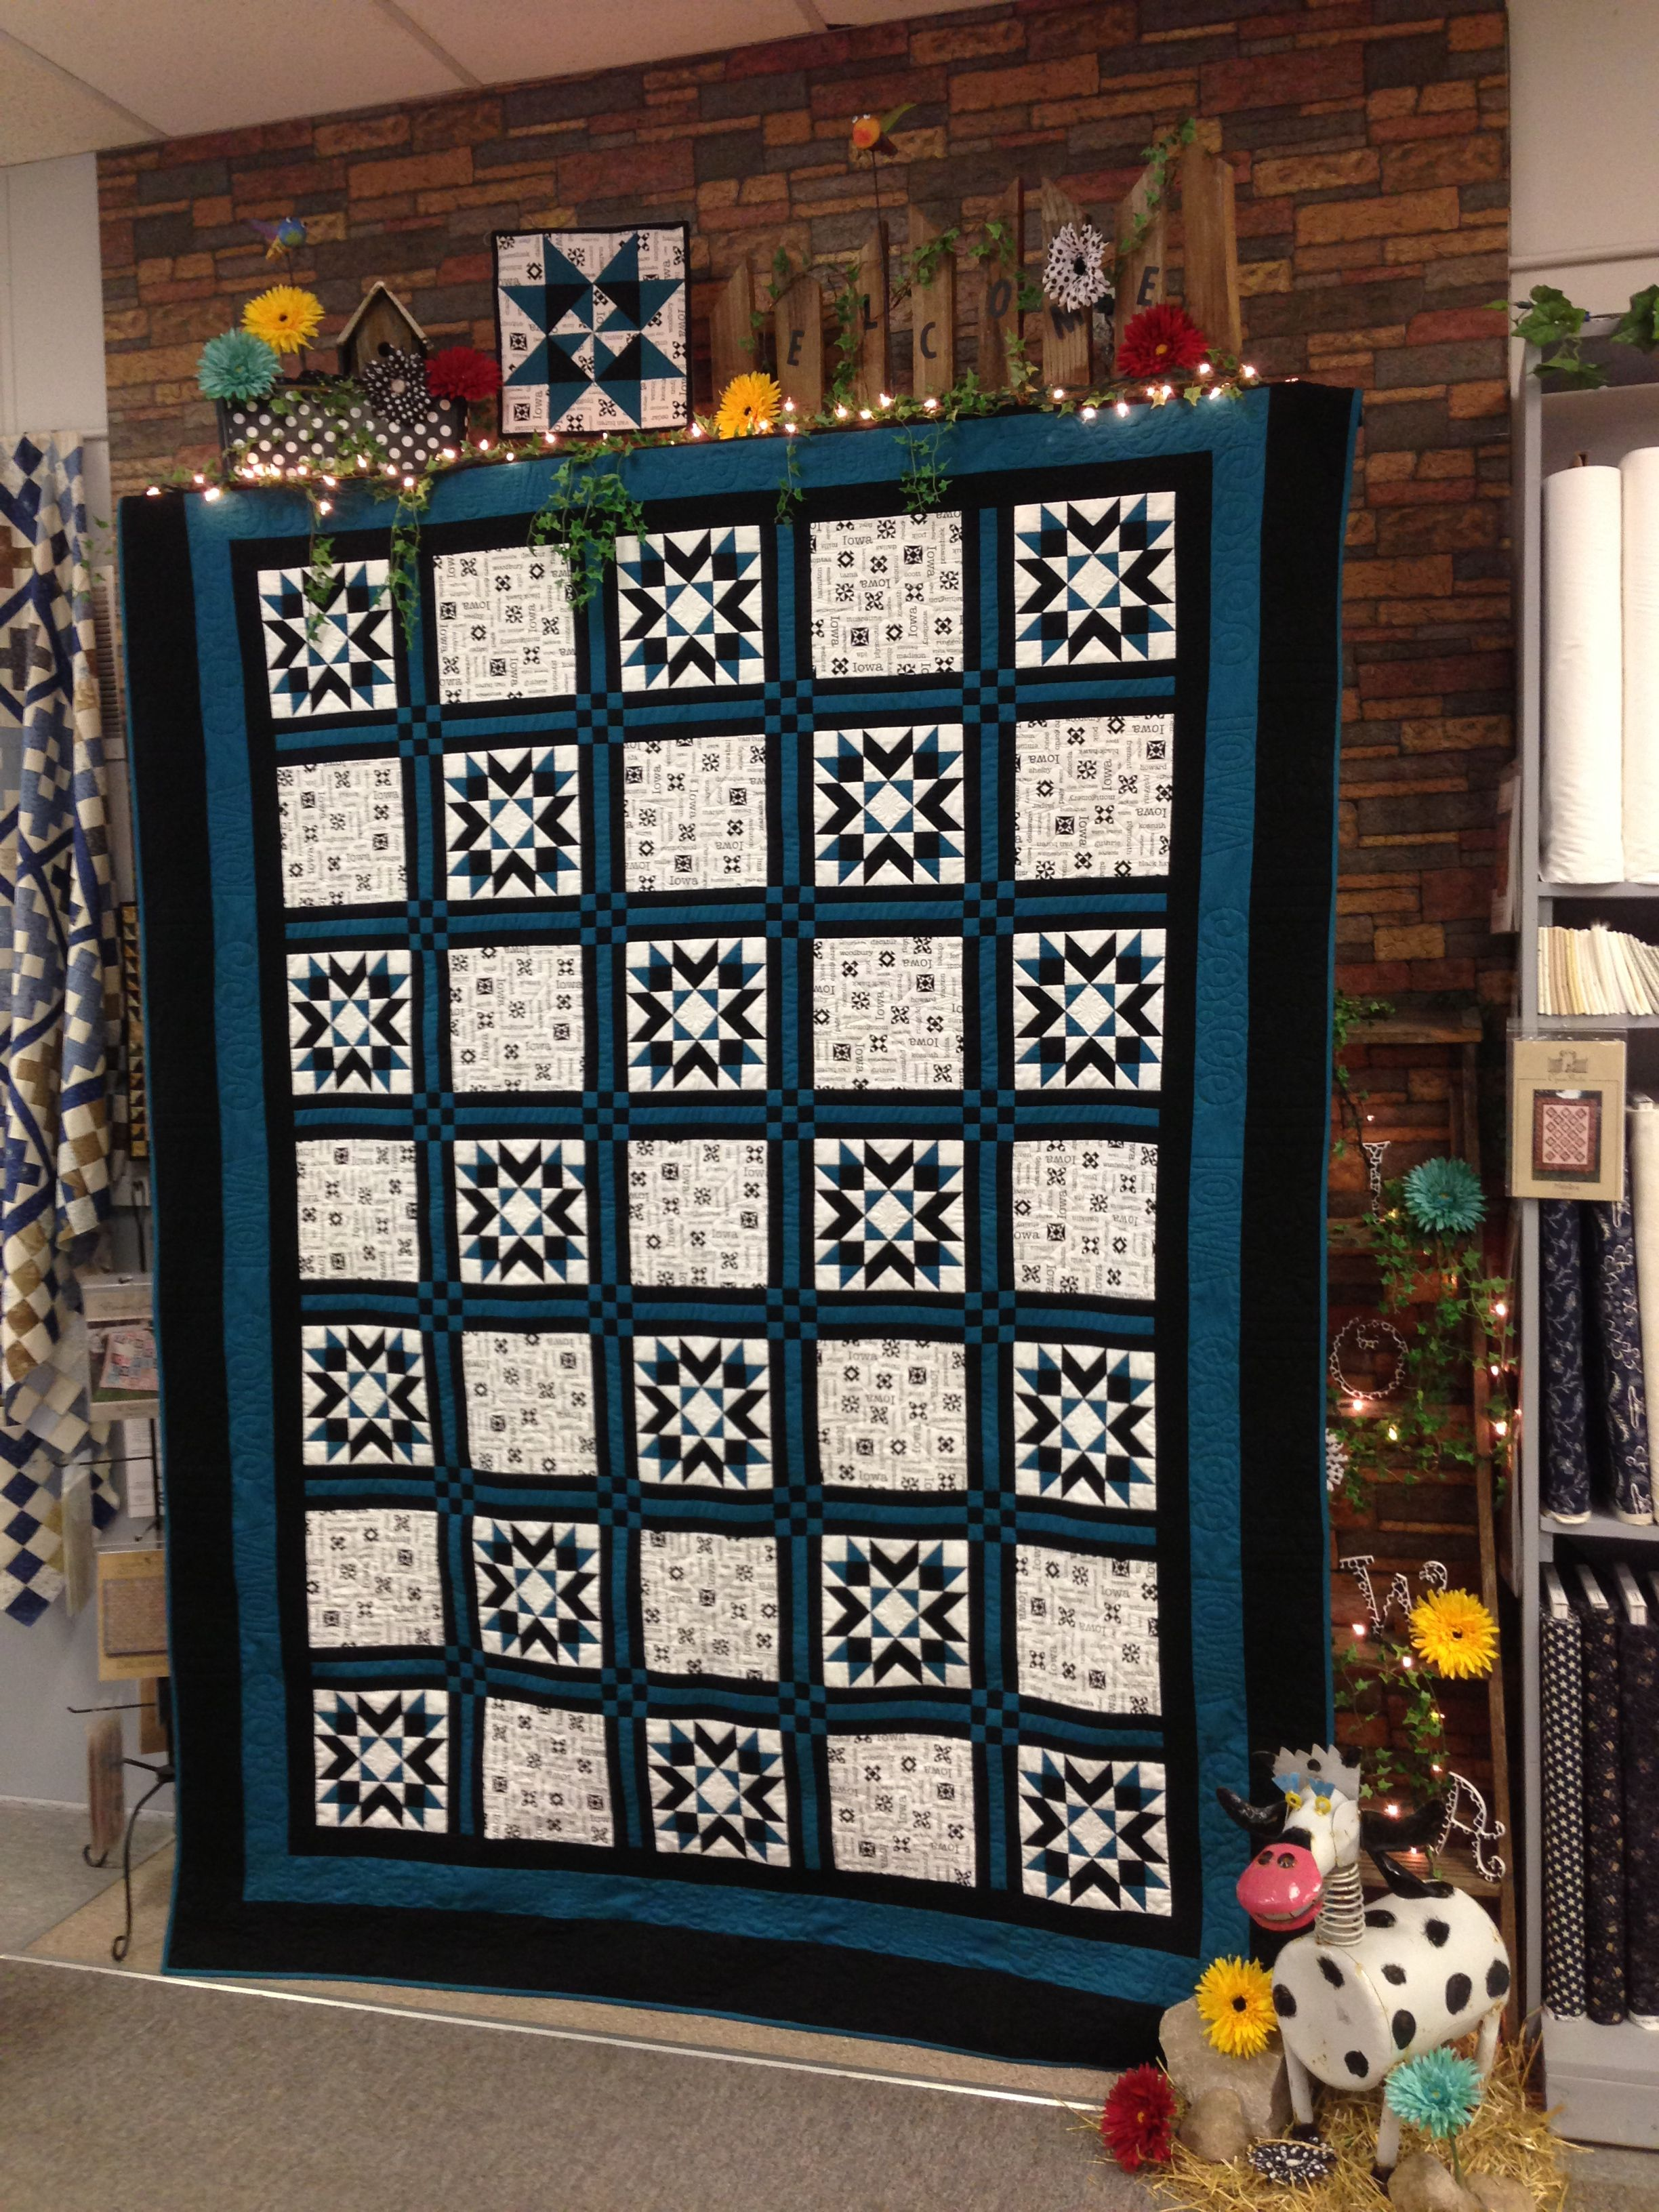 2013 All Iowa Quilt Shop Hop Inspired By Time Quilt Shop Storm Lake Iowa Quilts Decor Storm Lake